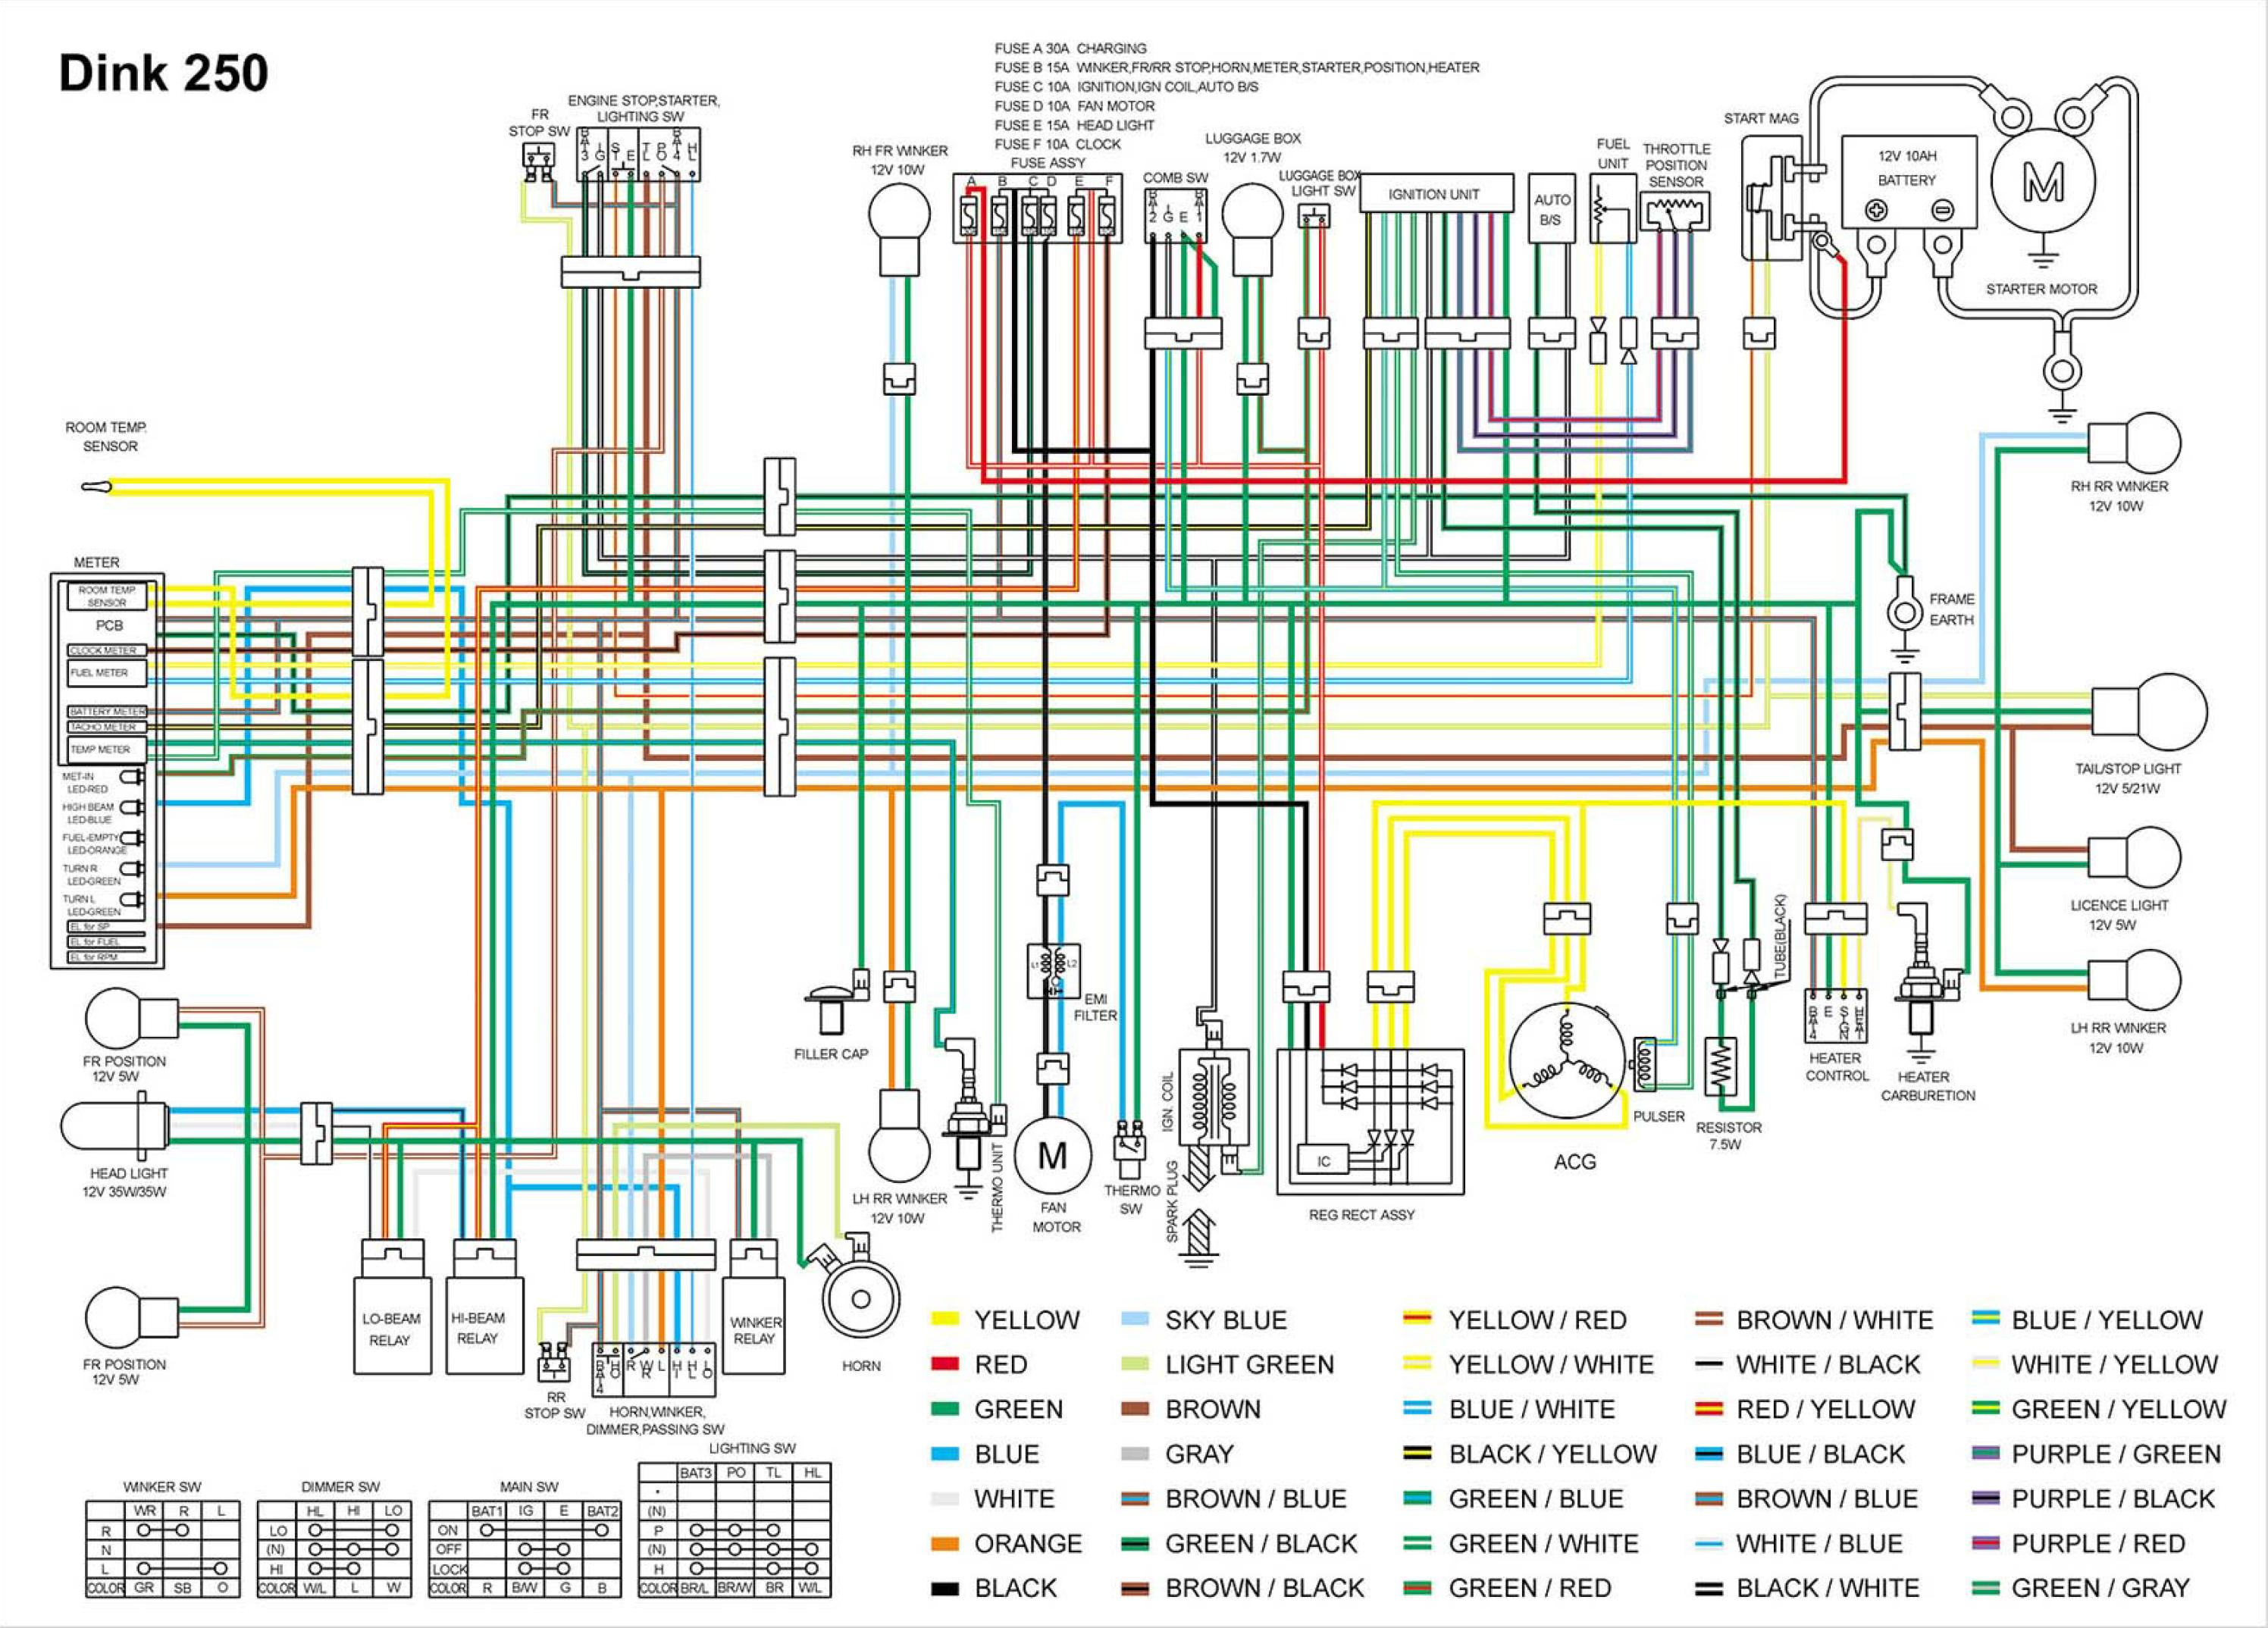 Vespa Battery Fuse Box Diagram Wiring Libraries Scooters Piaggio Fly 150 Schematic Librarykymco Schematics Rh Thyl Co Uk